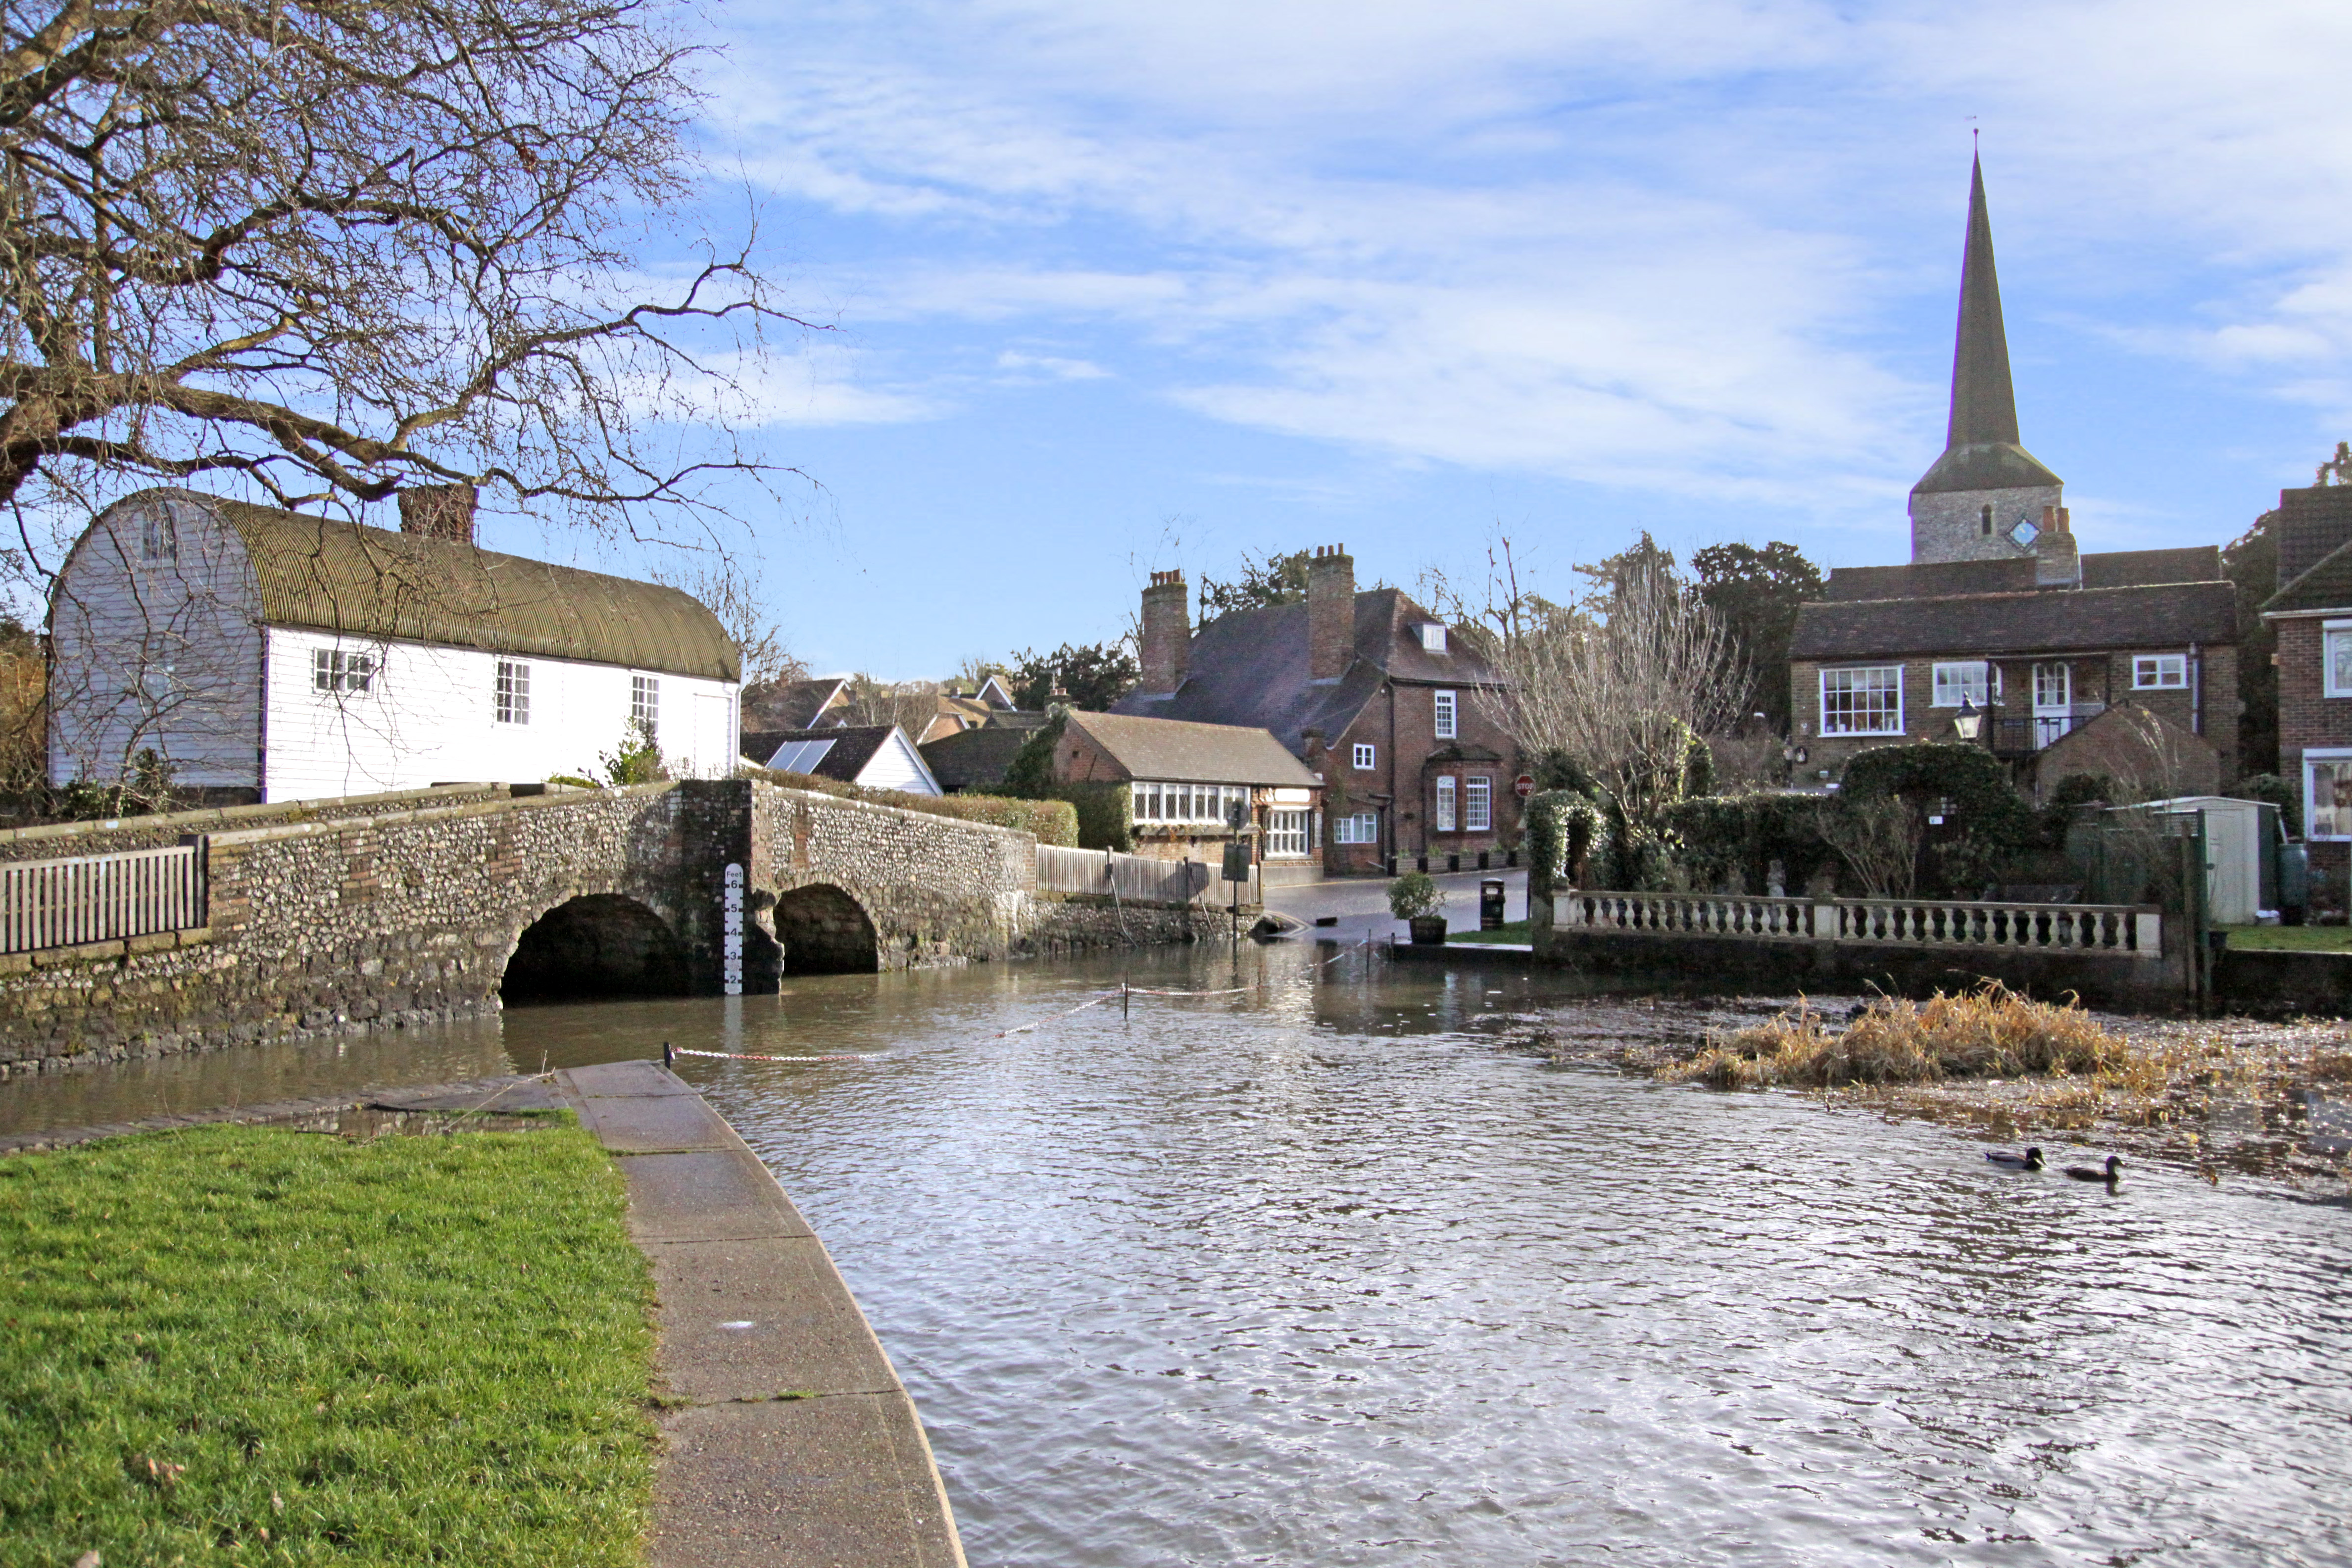 Eynsford: From Romans to modern rebels, an alluring village to